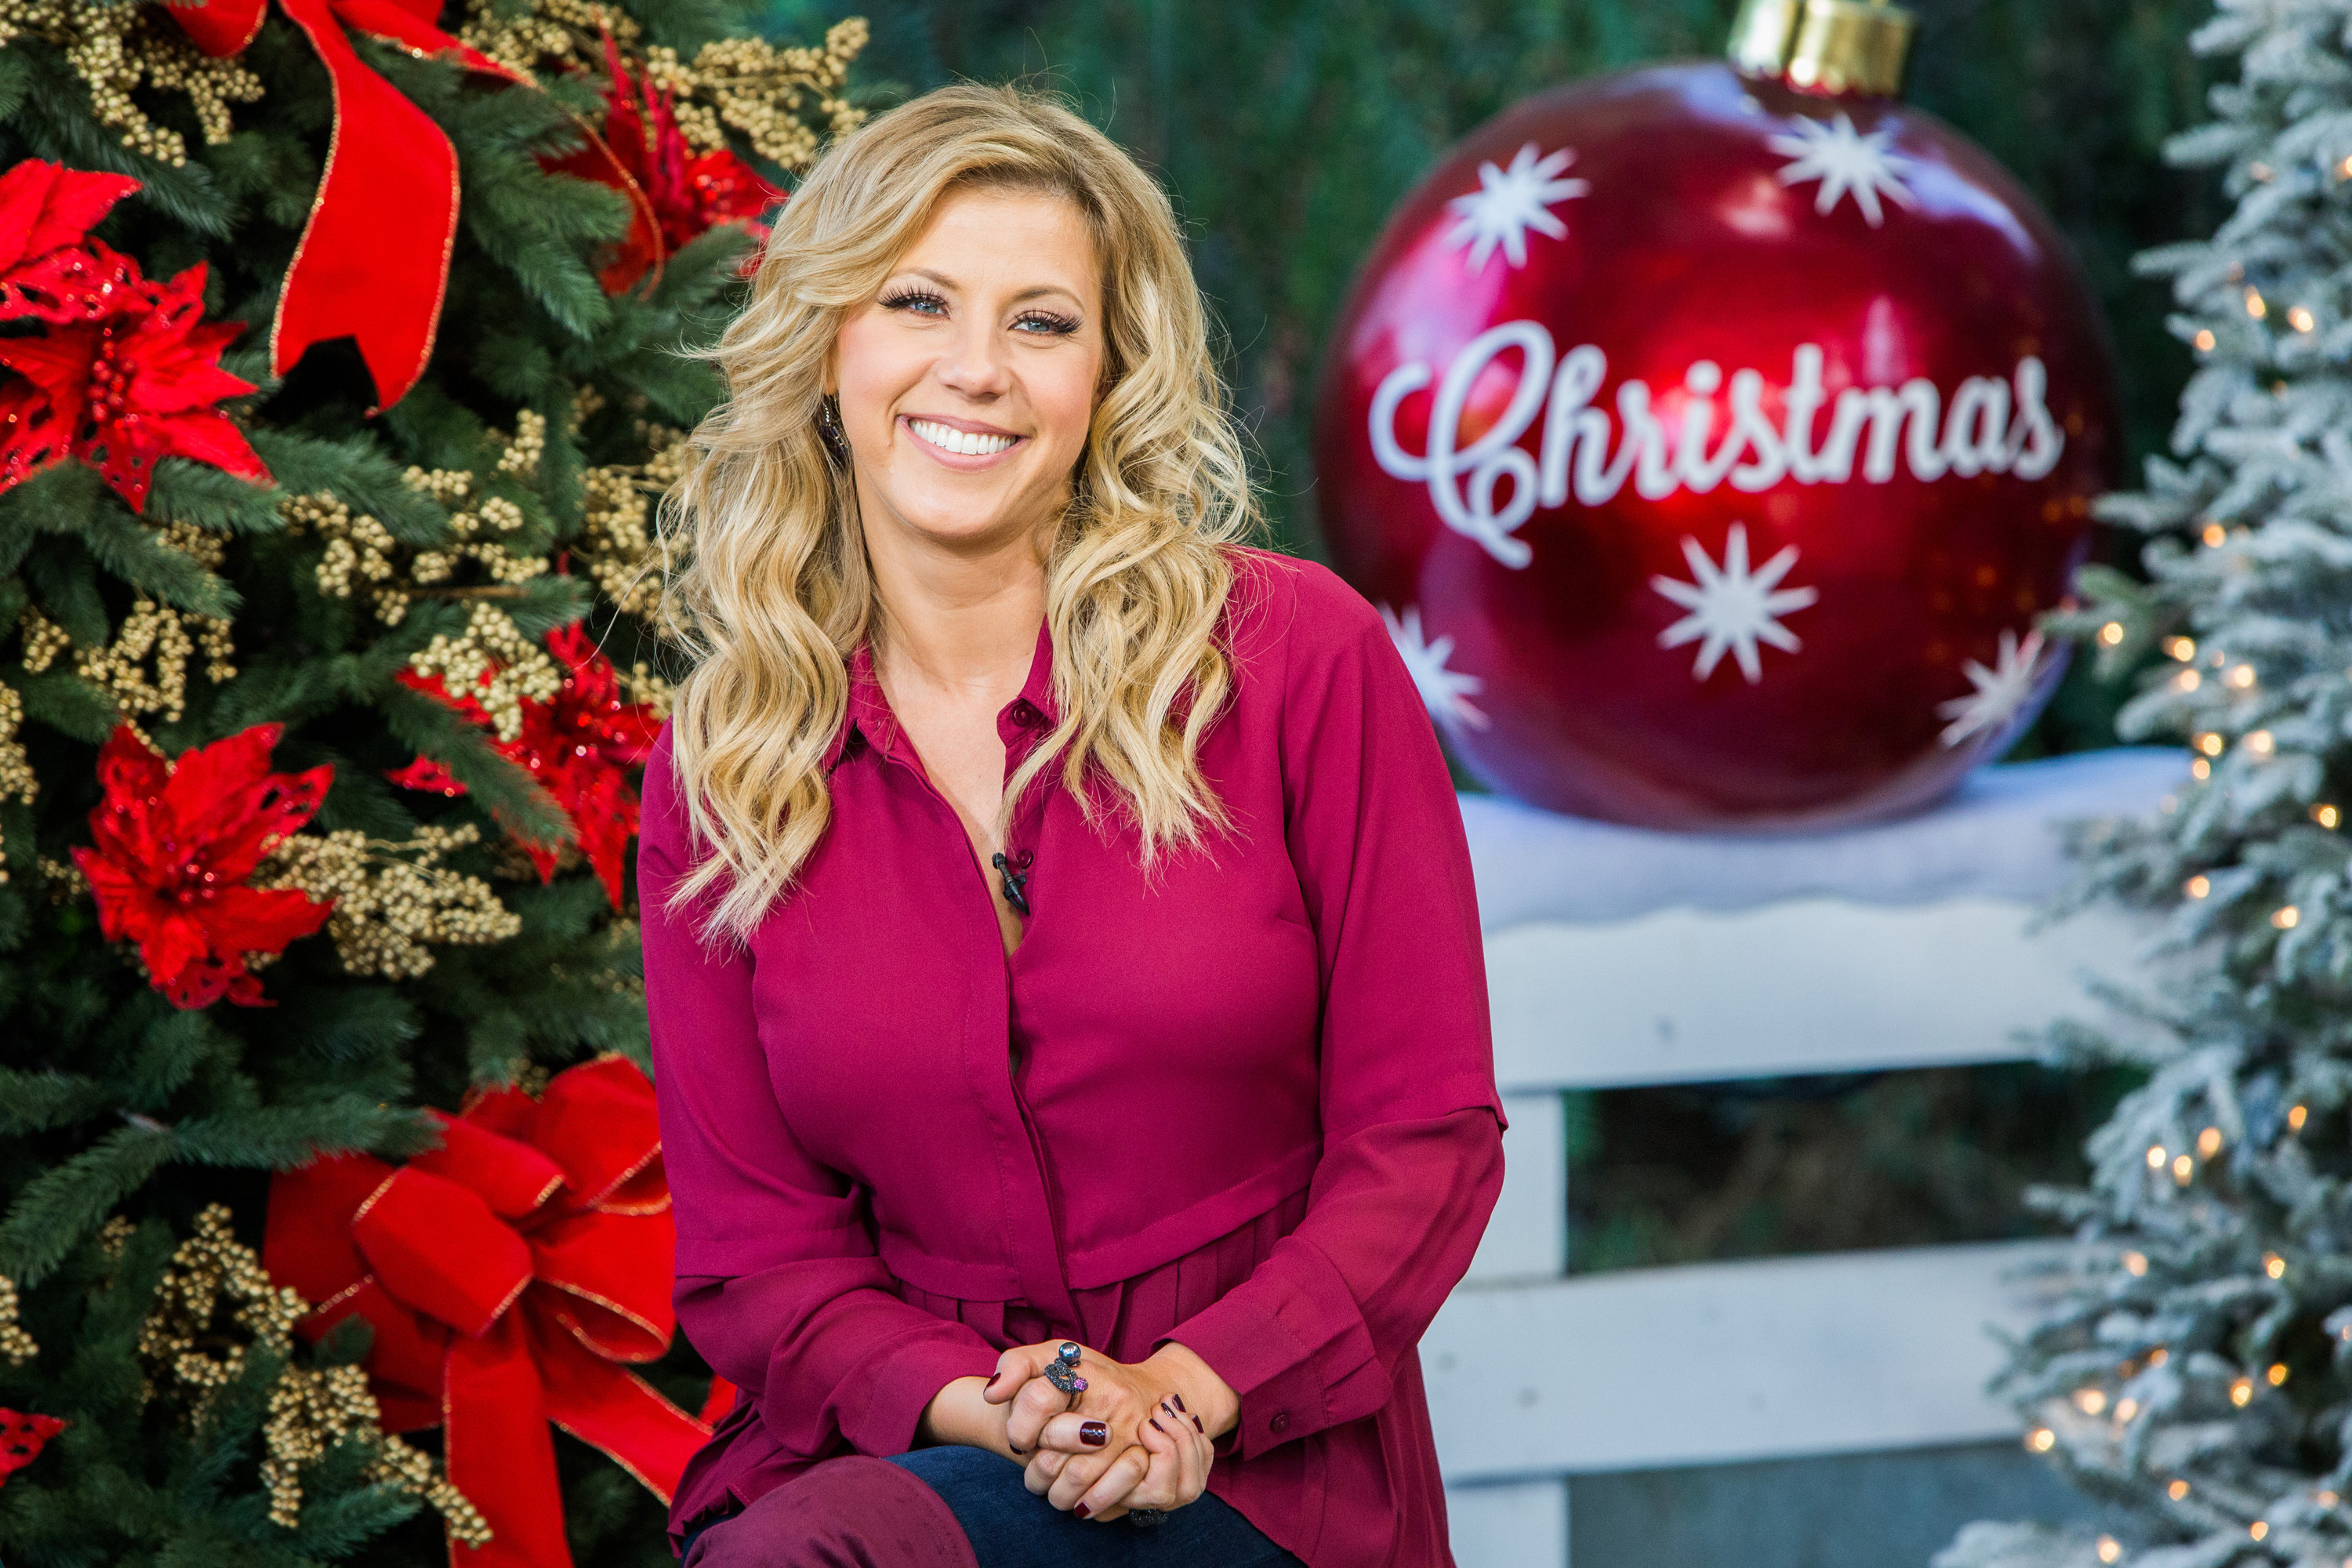 Crown Hd Wallpaper Jodie Sweetin Home Amp Family Video Hallmark Channel